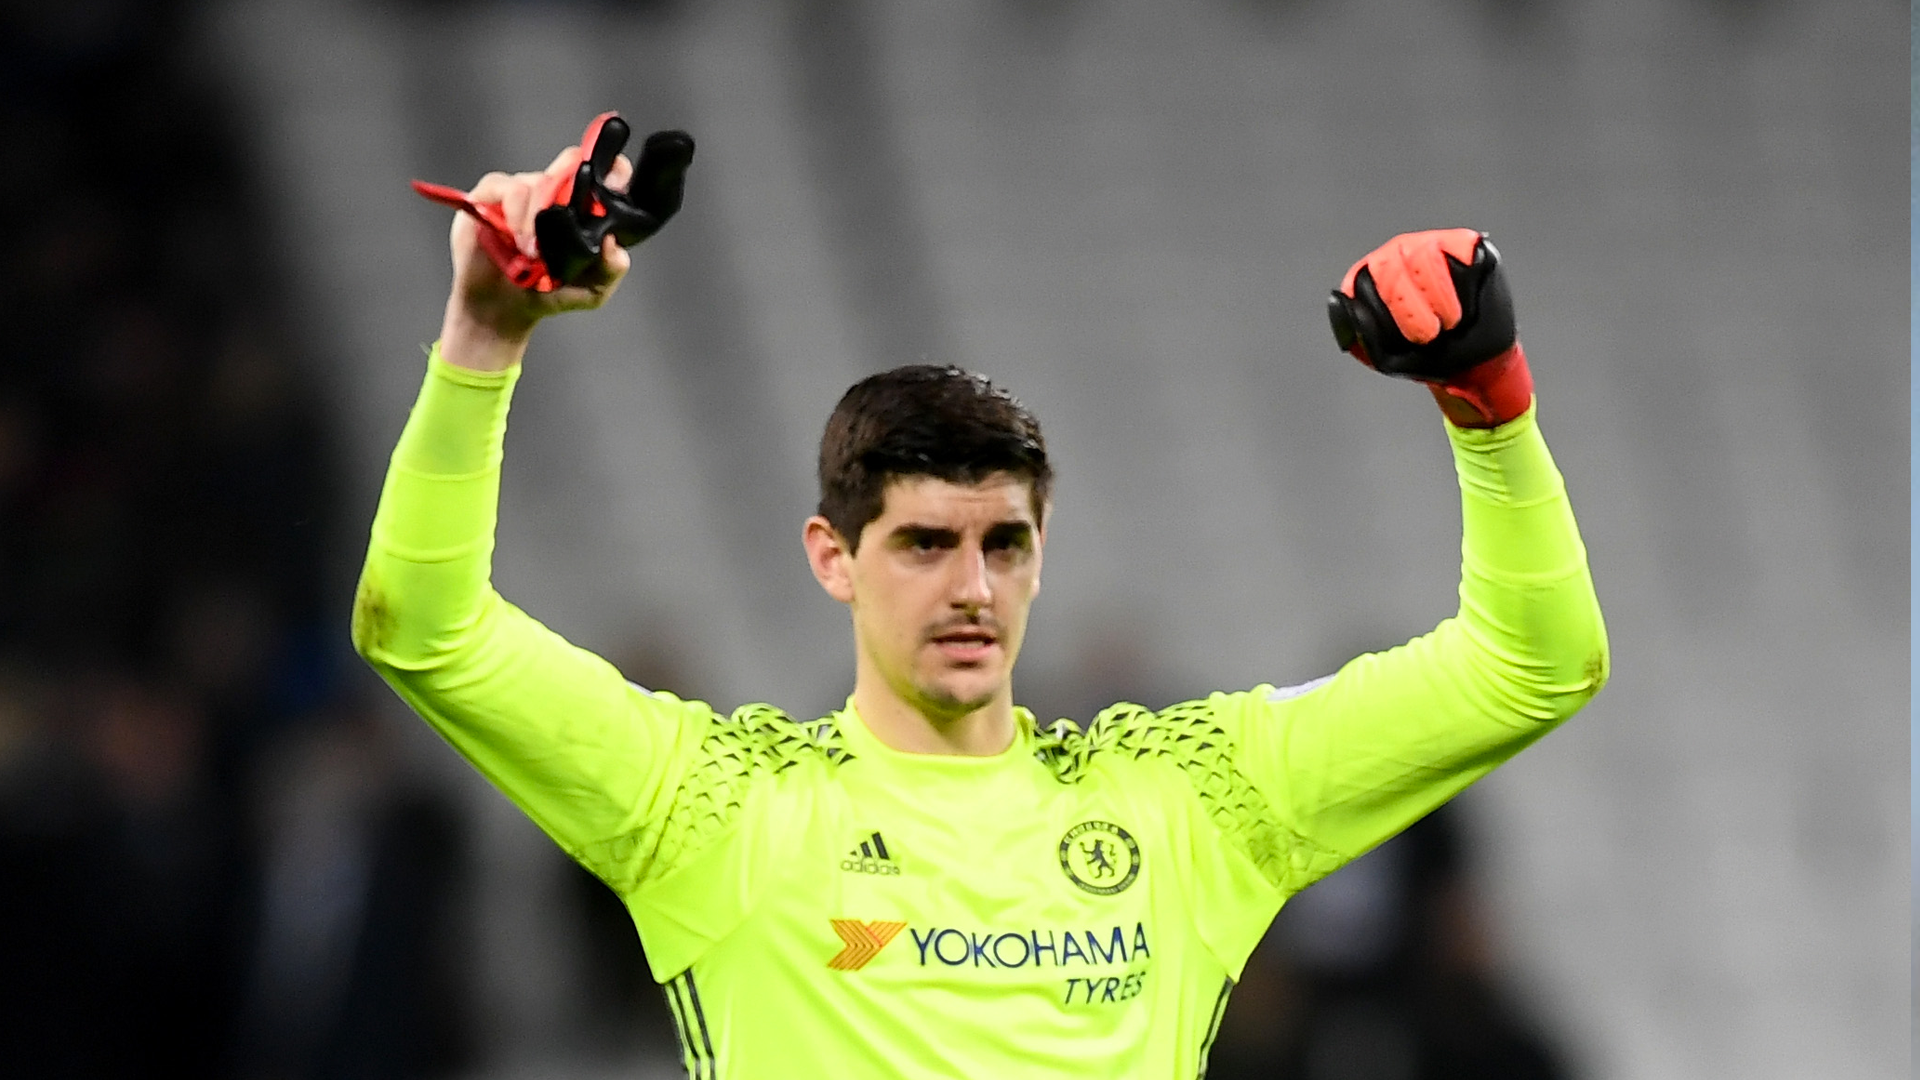 thibaut courtois 9se0czue4vtf1v6uc03czkh6y - Mourinho Has Made Man Utd Dirty - Courtois